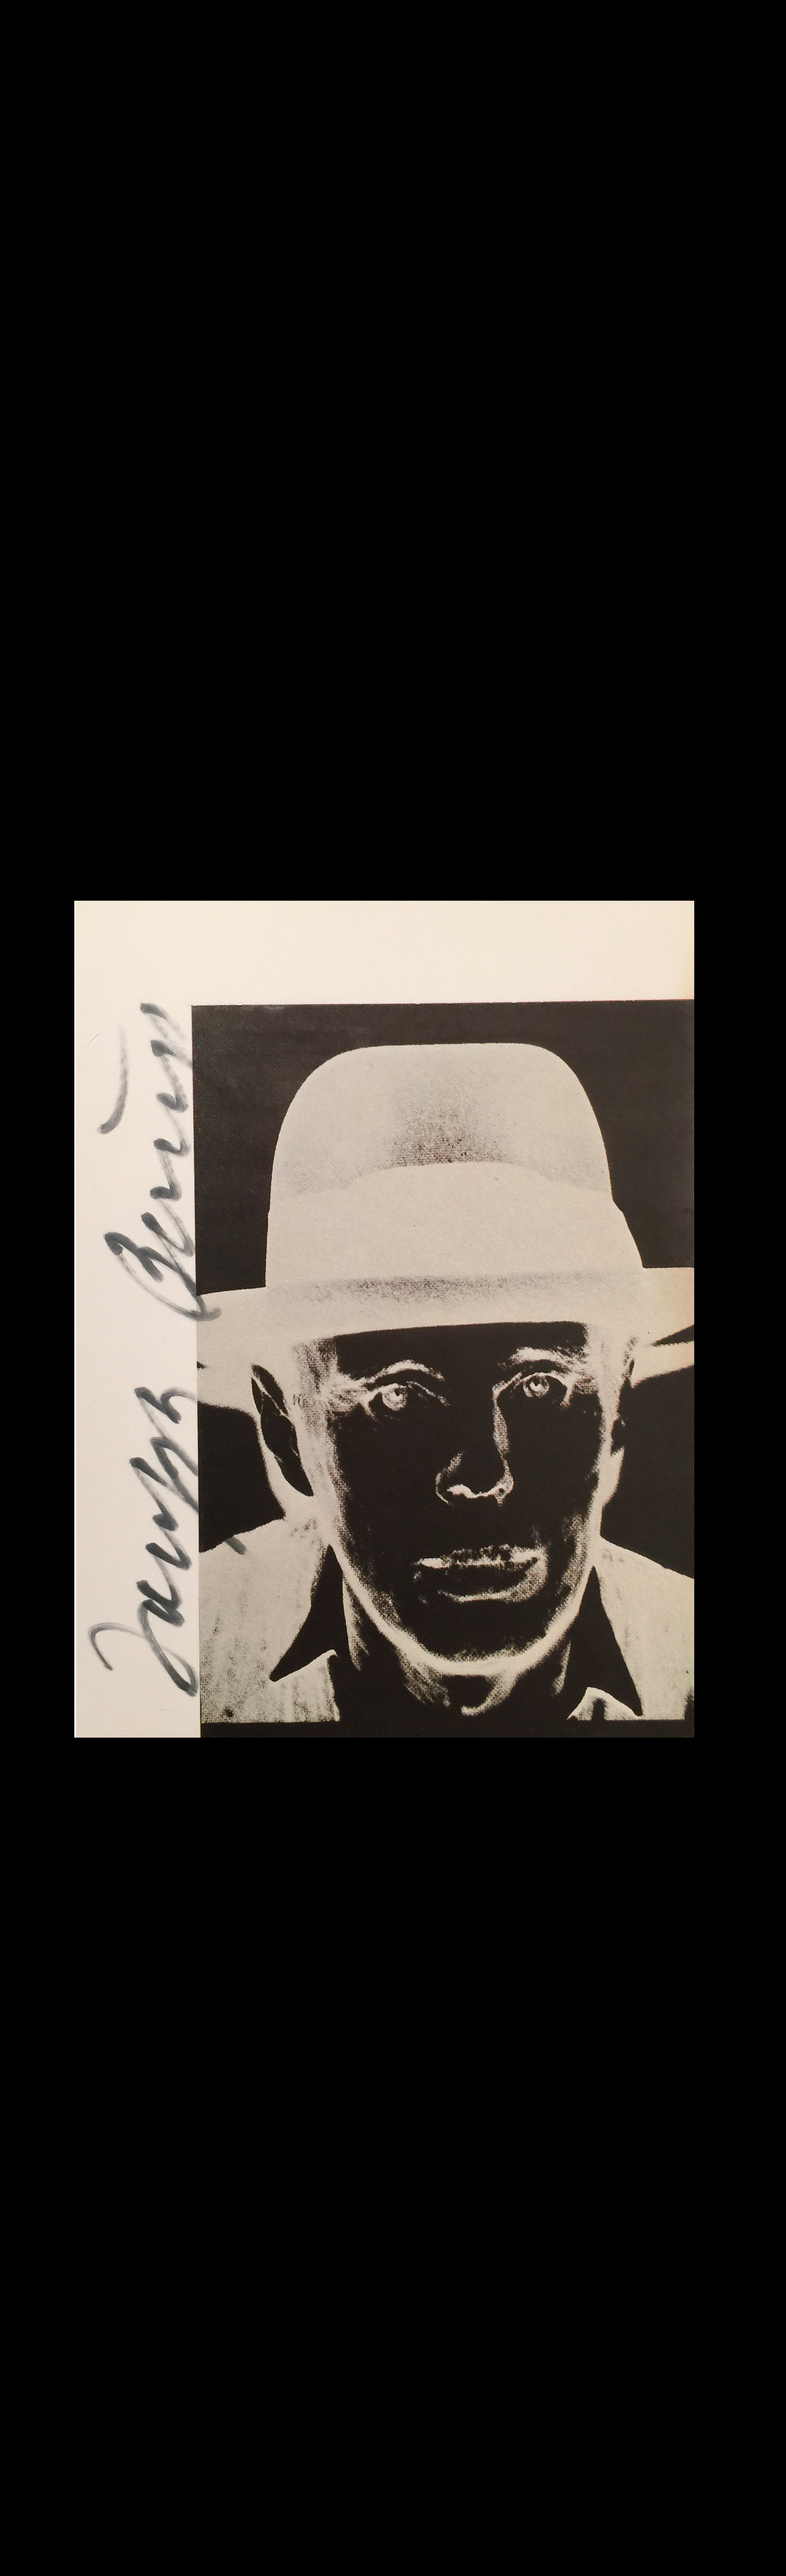 """BEUYS WARHOL"",  1980's, Signed by Beuys on a Warhol Catalogue Page."